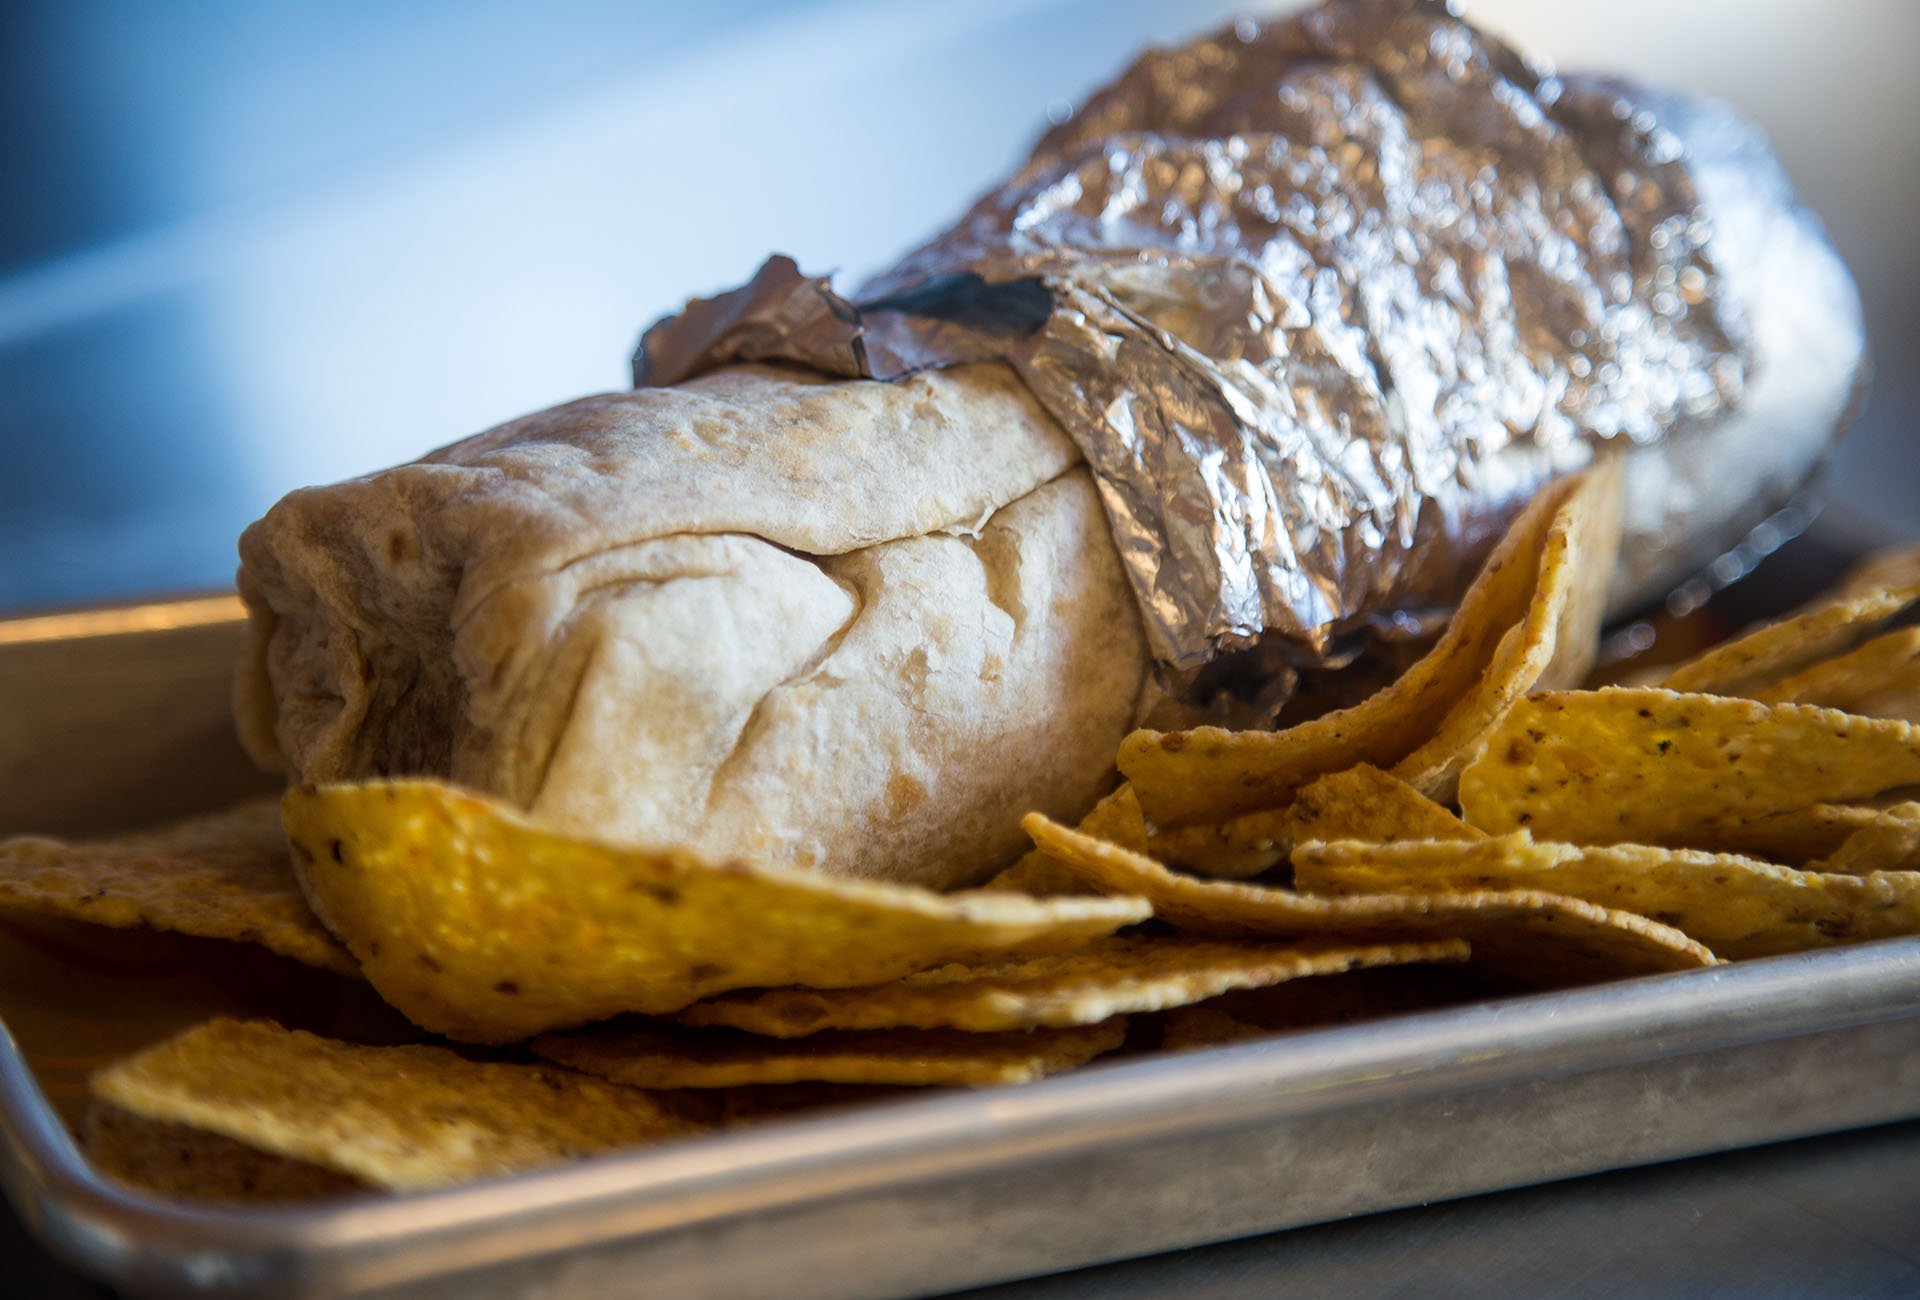 The Fried Chicken Burrito comes with tortilla chips.